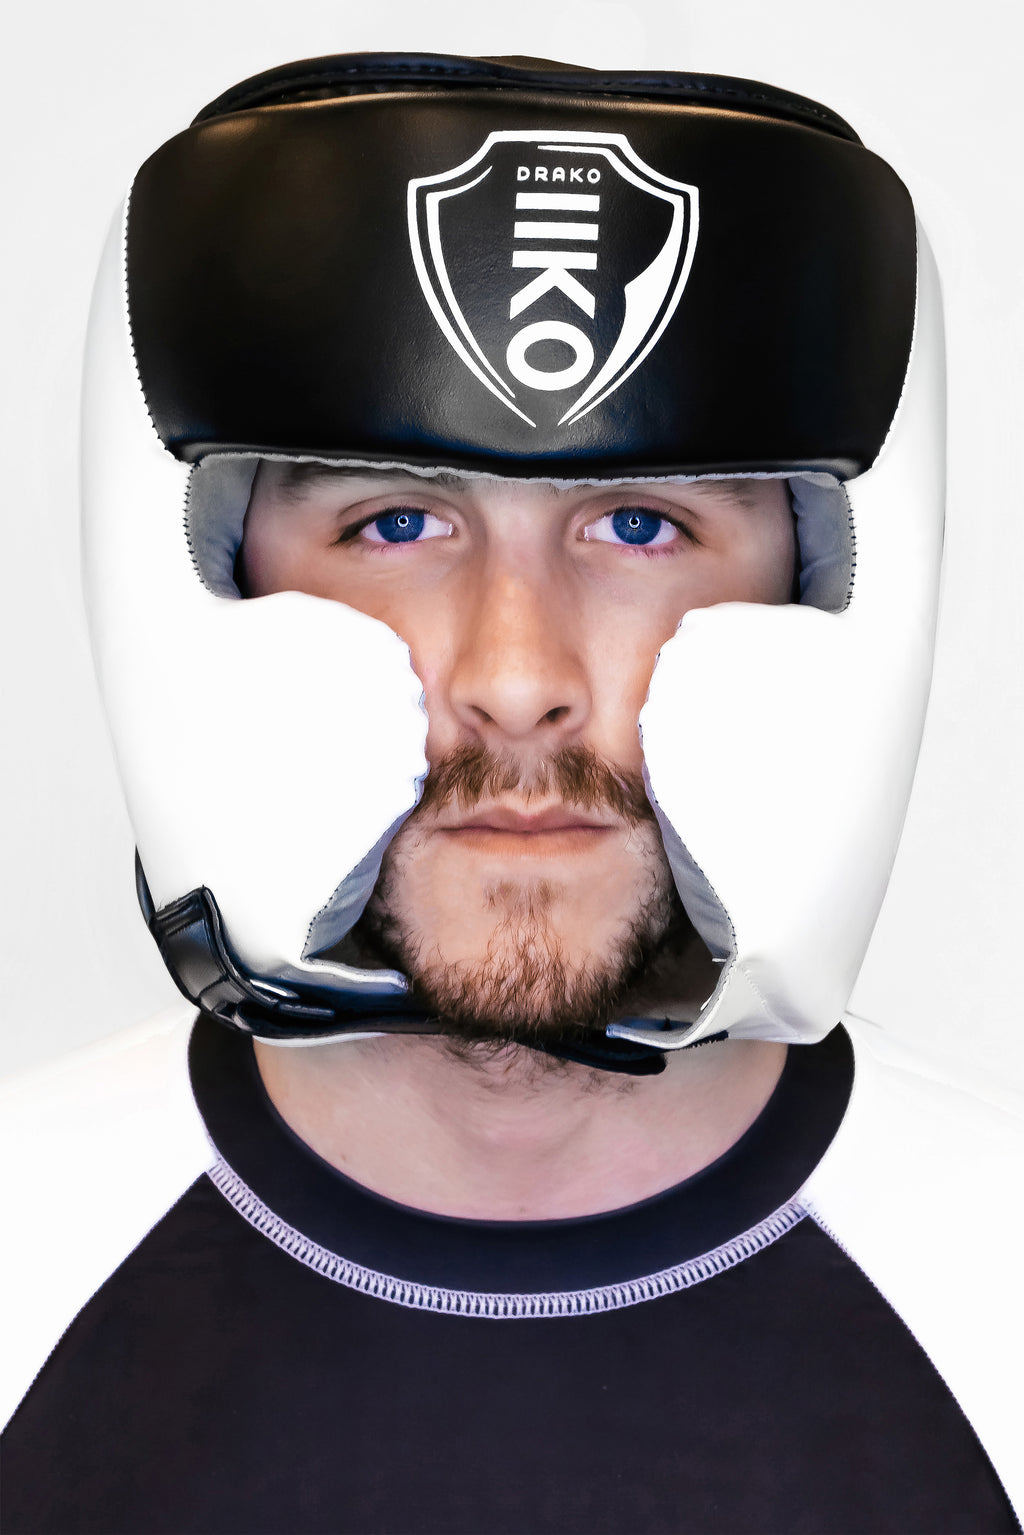 DRAKO MAGNUM TRAINING BOXING HEADGEAR